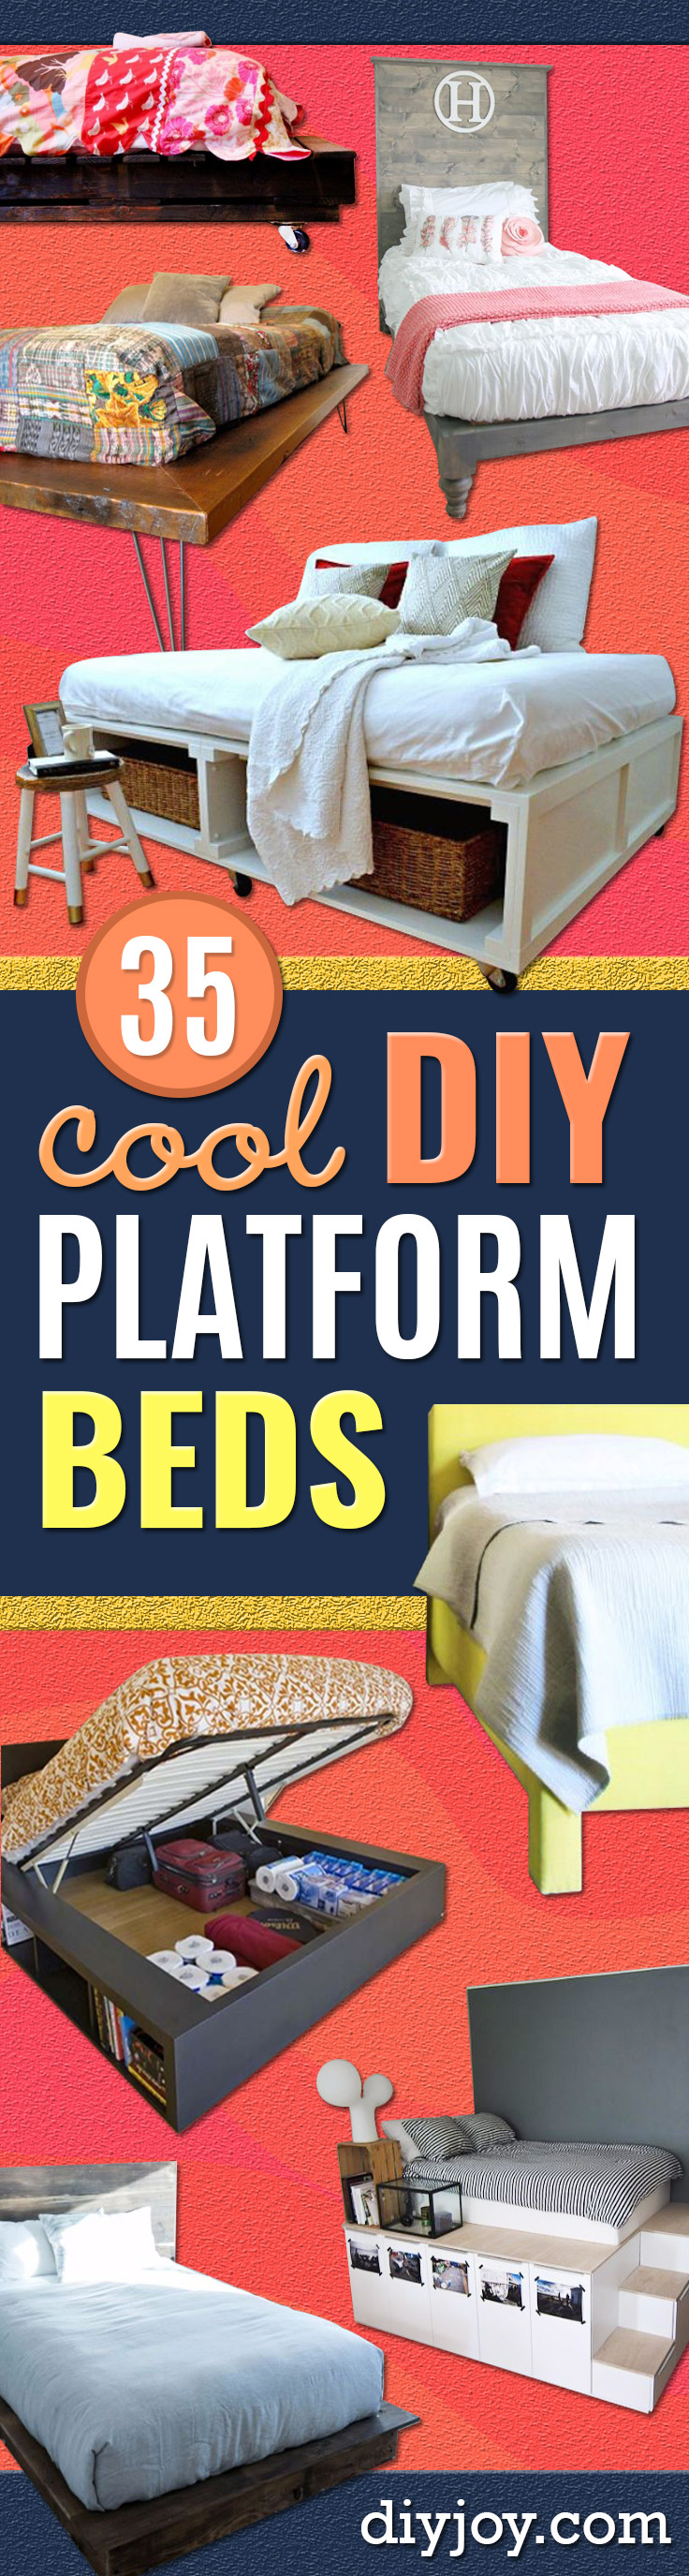 DIY Platform Beds - Easy Do It Yourself Bed Projects - Step by Step Tutorials for Bedroom Furniture - Learn How To Make Twin, Full, King and Queen Size Platforms - With Headboard, Storage, Drawers, Made from Pallets - Cheap Ideas You Can Make on a Budget